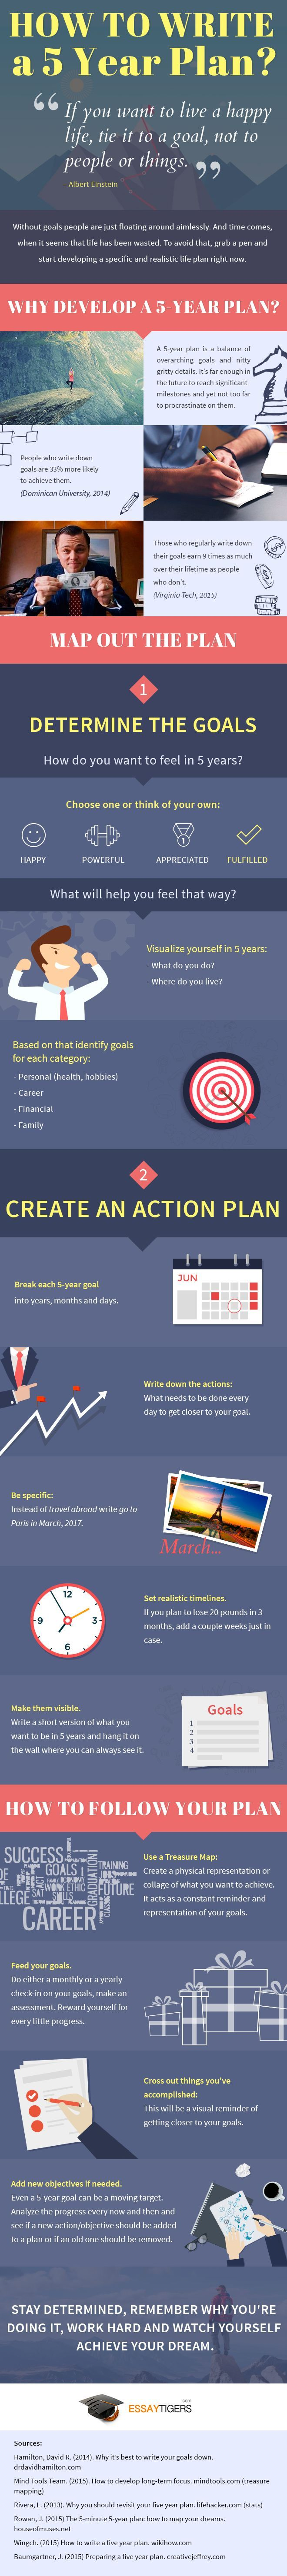 Management : How to Write a 5 Year Plan [Infographic]